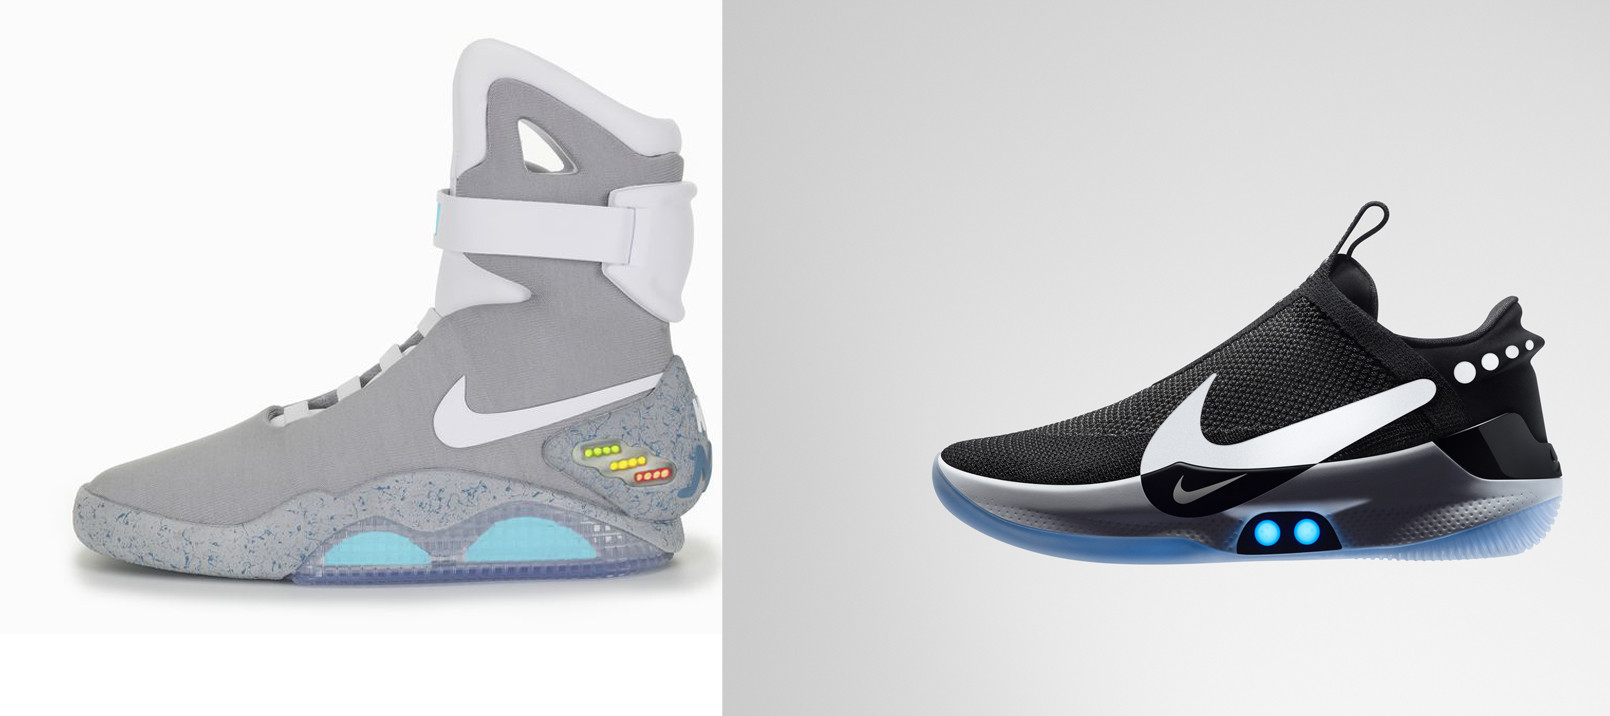 online store 96d15 565c0 1,500 pairs of the Nike Air Mag, left, were sold through an auction in  2011. The  350 Nike Adapt BB, right, is scheduled to hit retail Feb. 17.